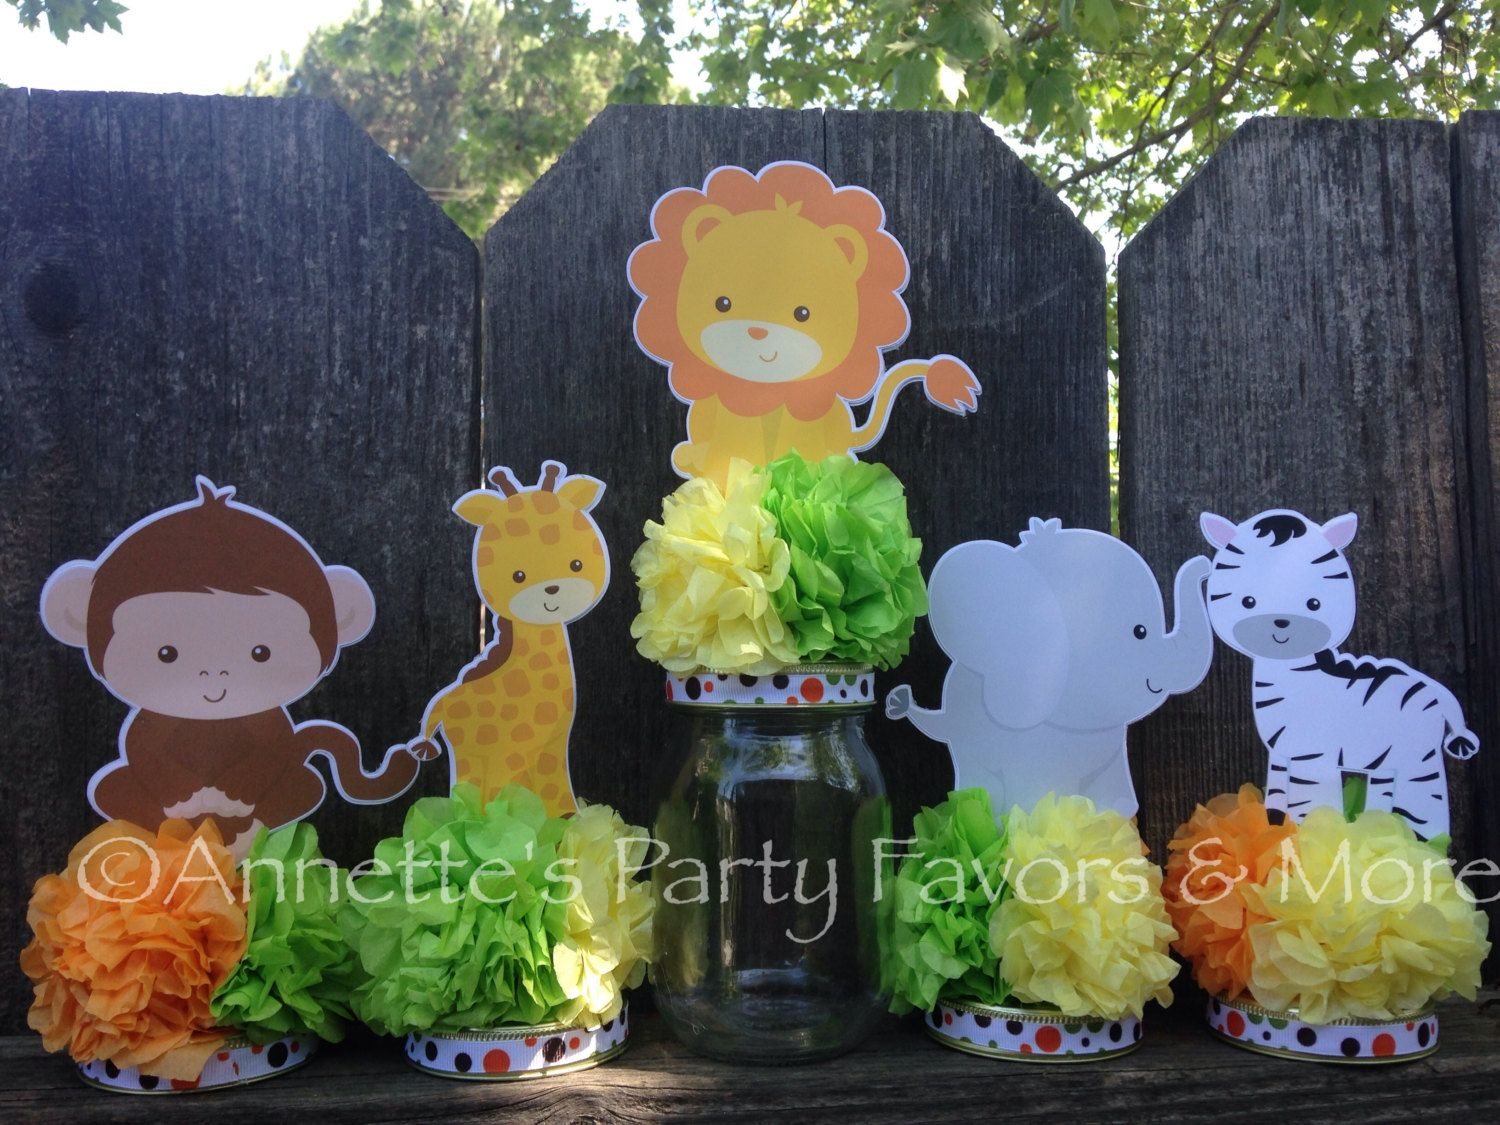 Jungle Safari Baby Shower Decorations - Jungle safari jar centerpiece decoration for baby shower birthday party decoration set of 5 fill with candy